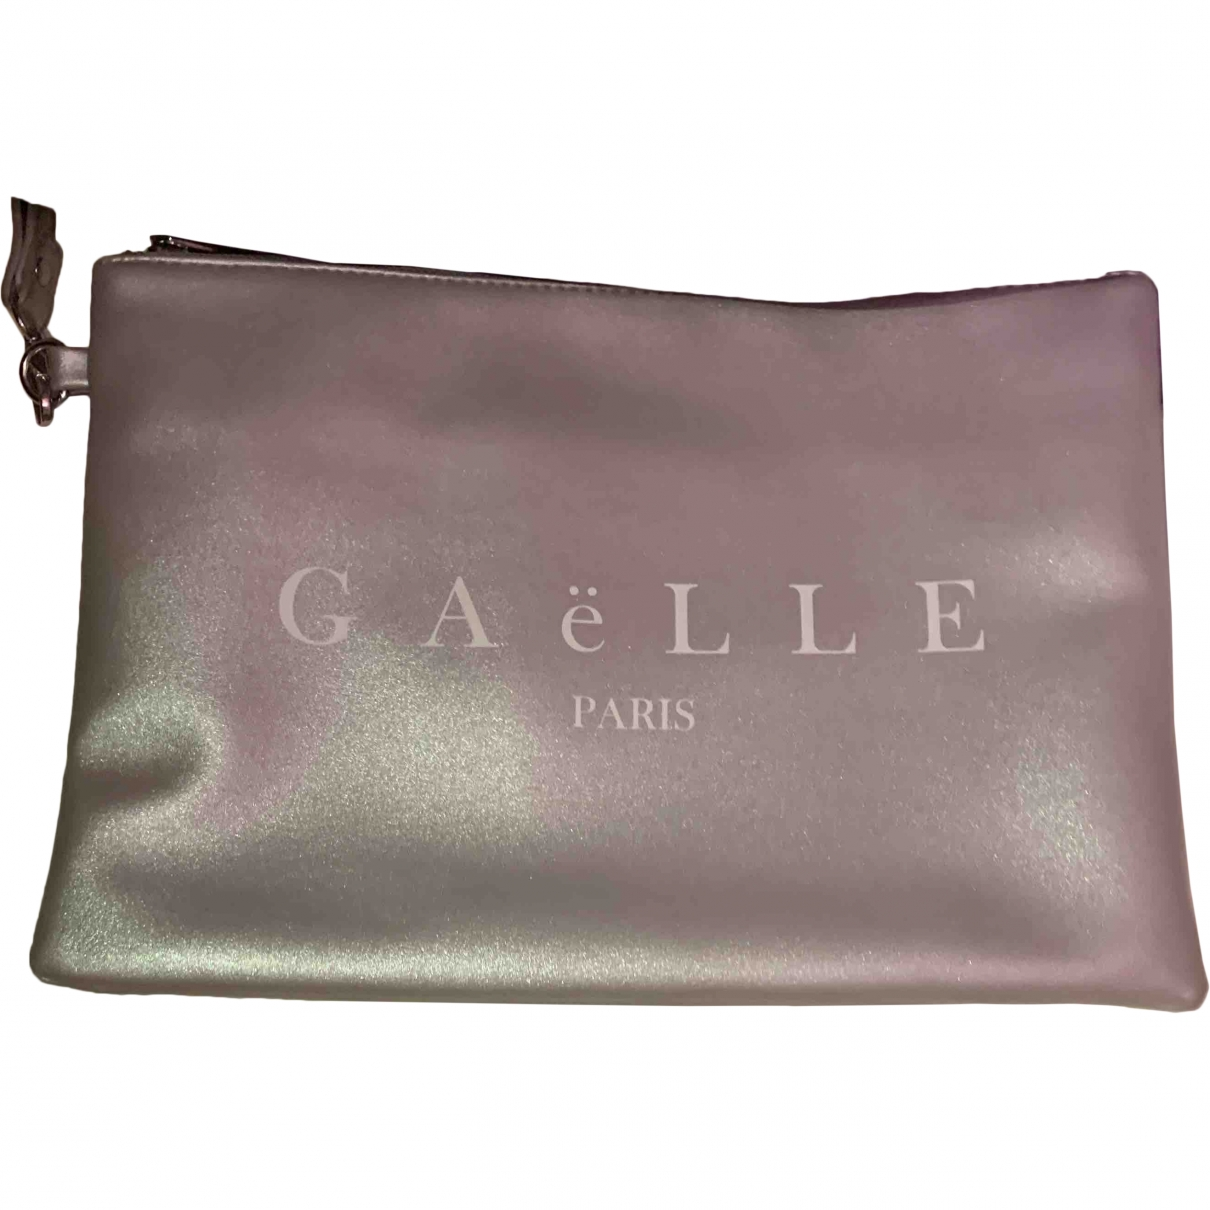 Gaelle Paris \N Silver Leather Clutch bag for Women \N